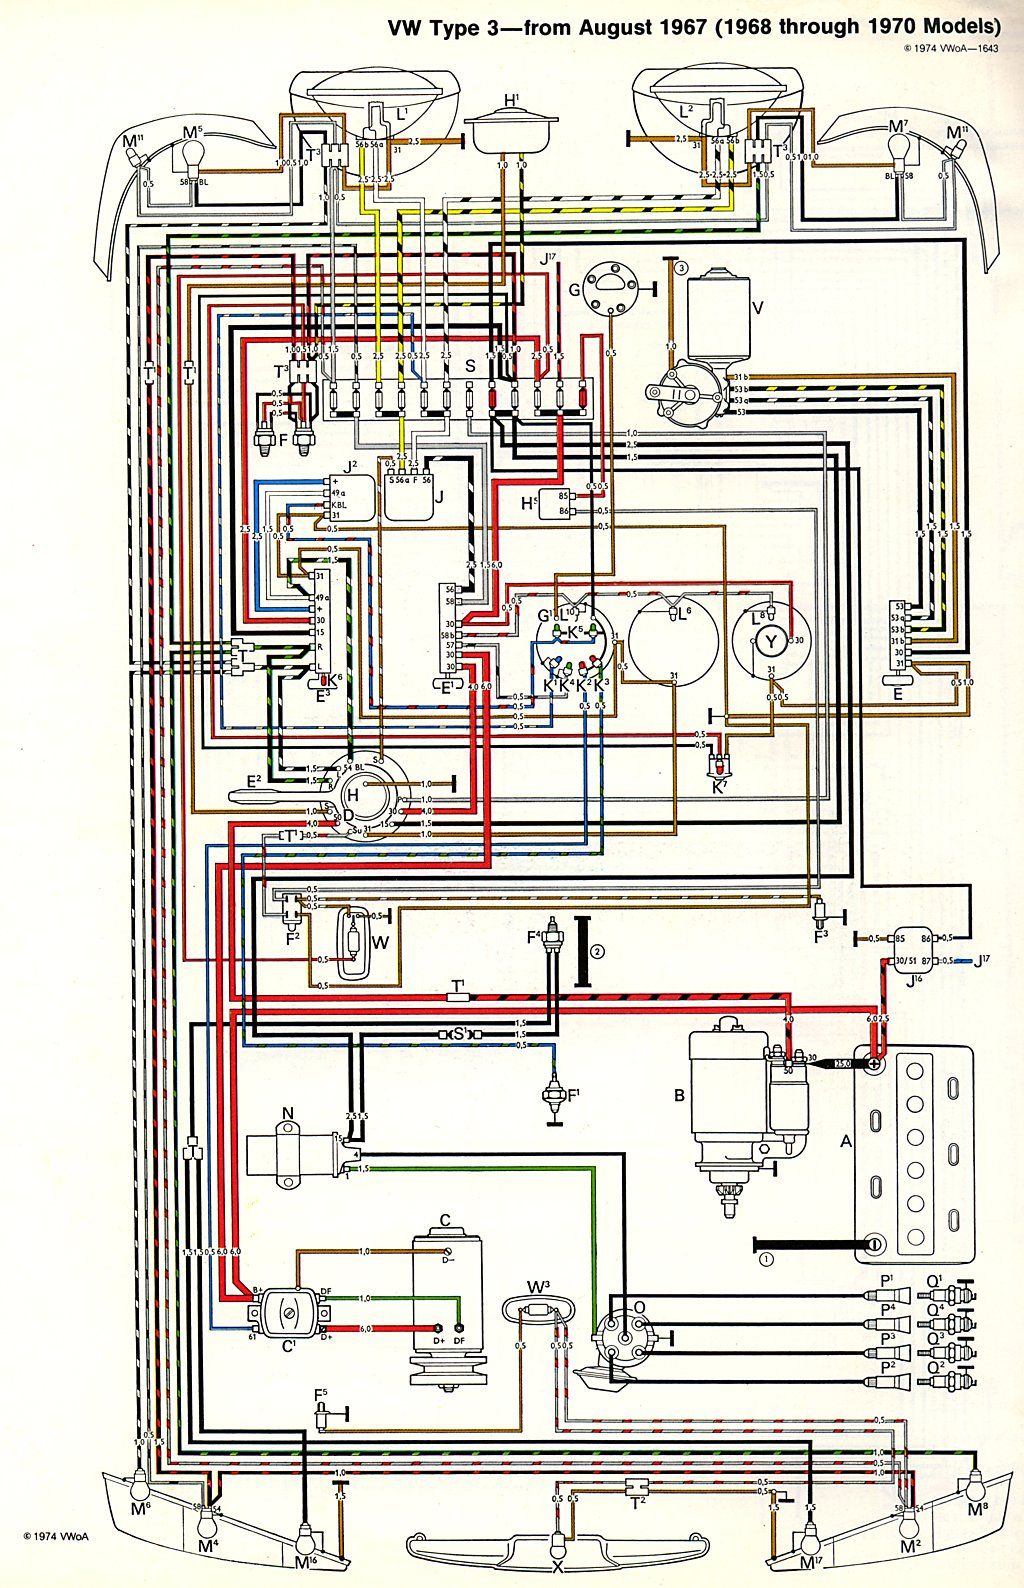 thesamba com type 3 wiring diagrams rv wiring diagram 2000 vw wiring diagram computer #2